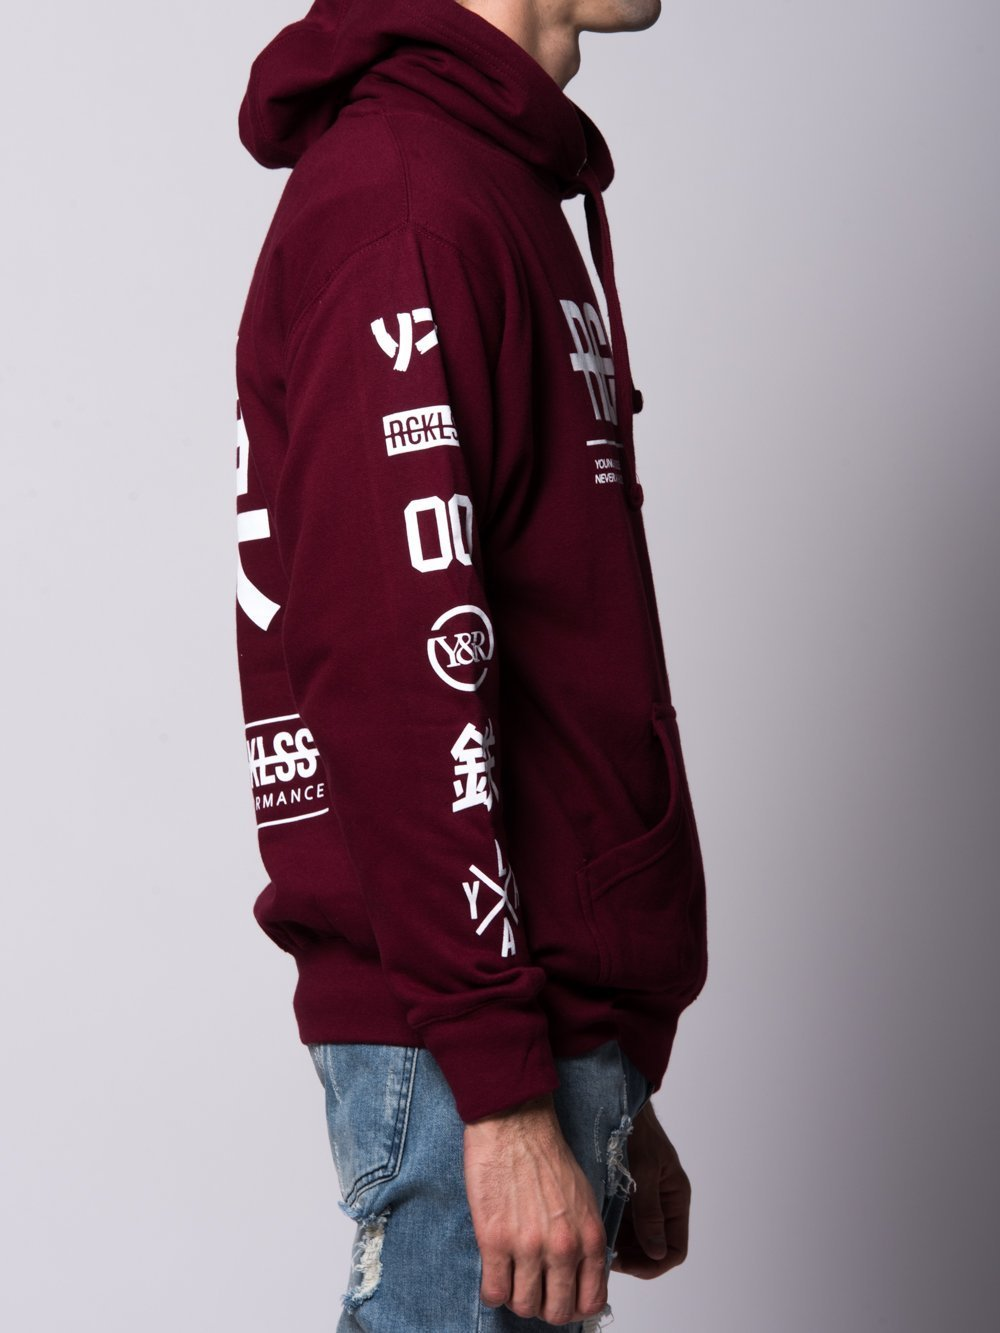 Stylish and sleek- burgundy hoodie